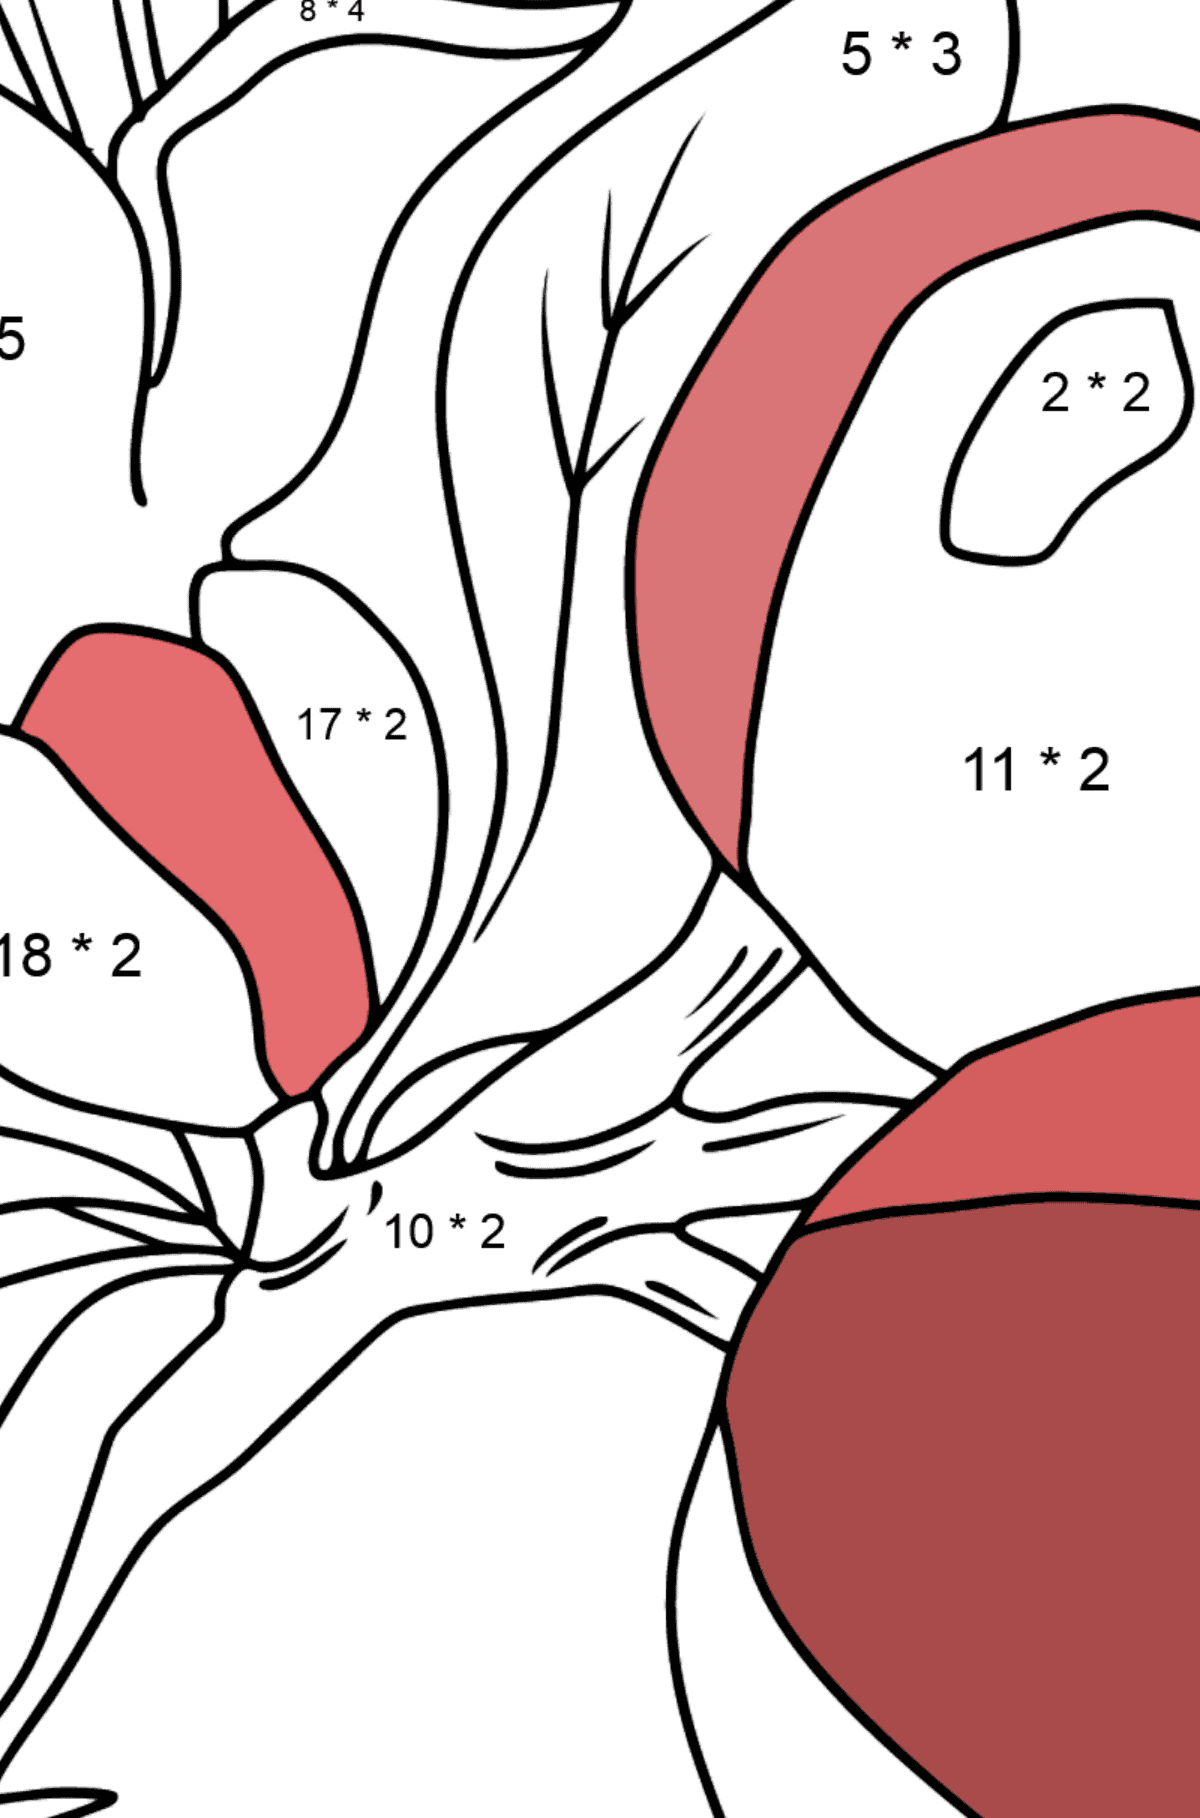 Coloring Page - flowers and fruits - Math Coloring - Multiplication for Kids